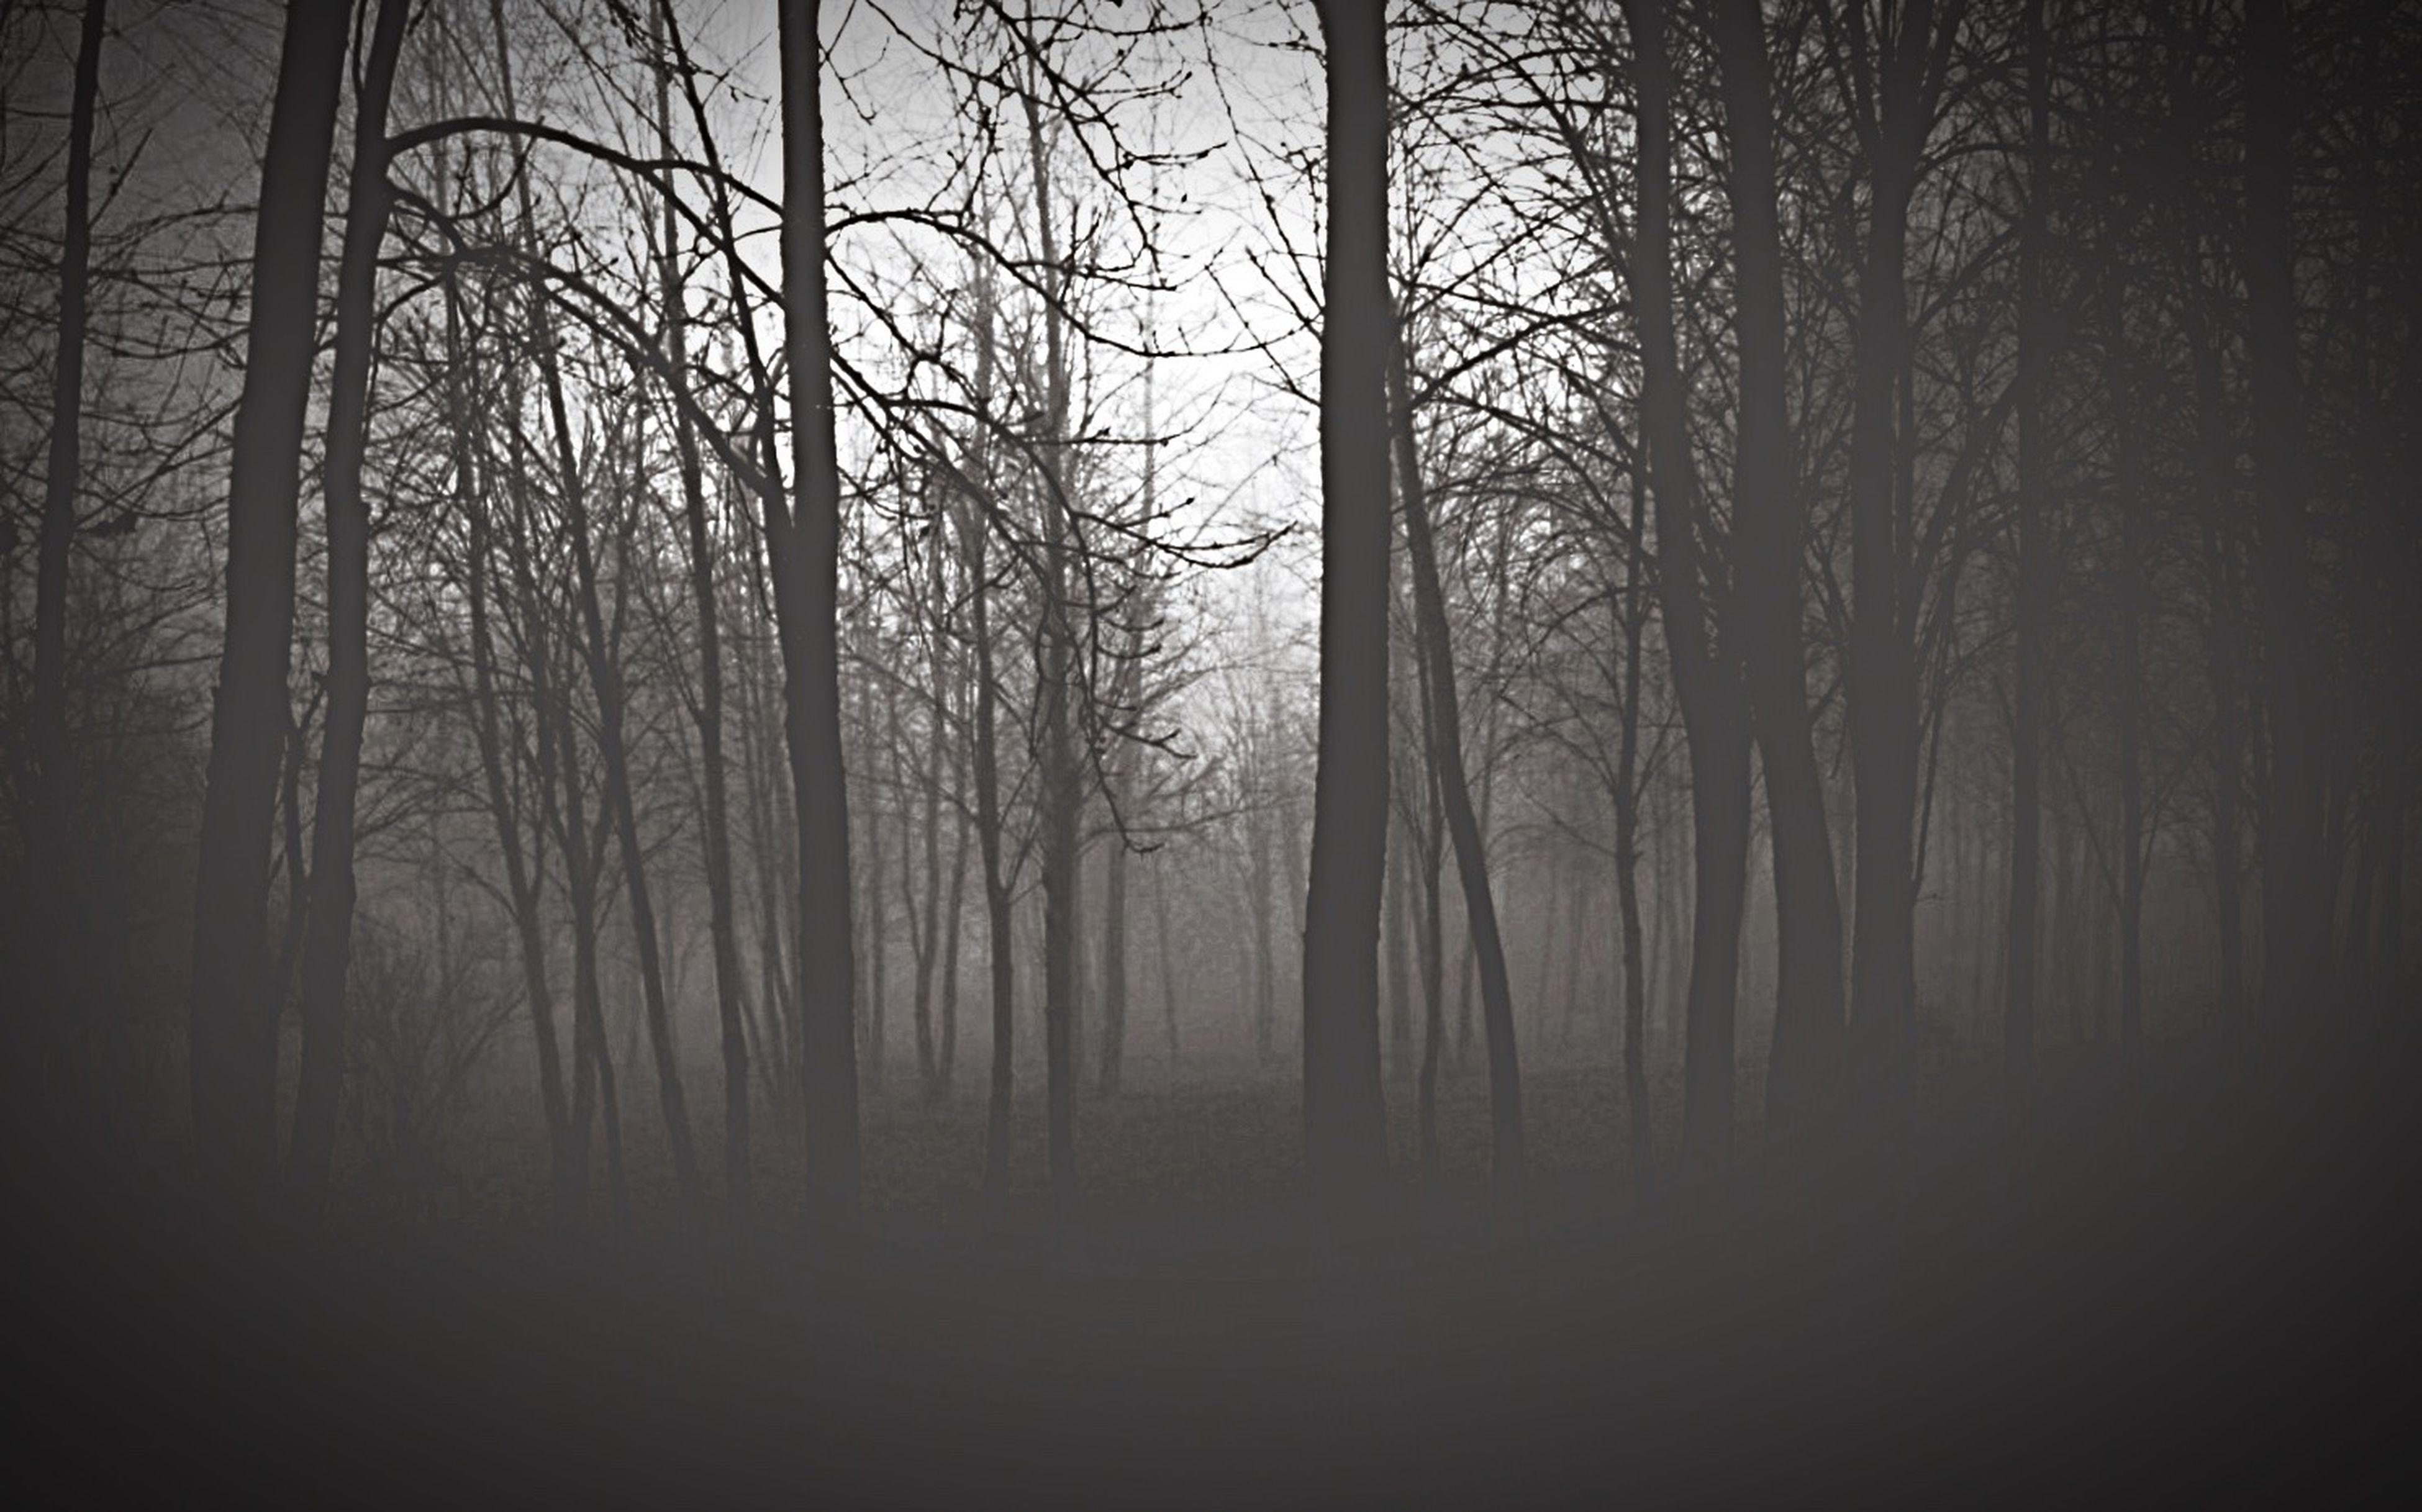 tree, tranquility, forest, tranquil scene, tree trunk, bare tree, woodland, fog, nature, scenics, branch, beauty in nature, silhouette, growth, non-urban scene, dark, foggy, landscape, weather, no people